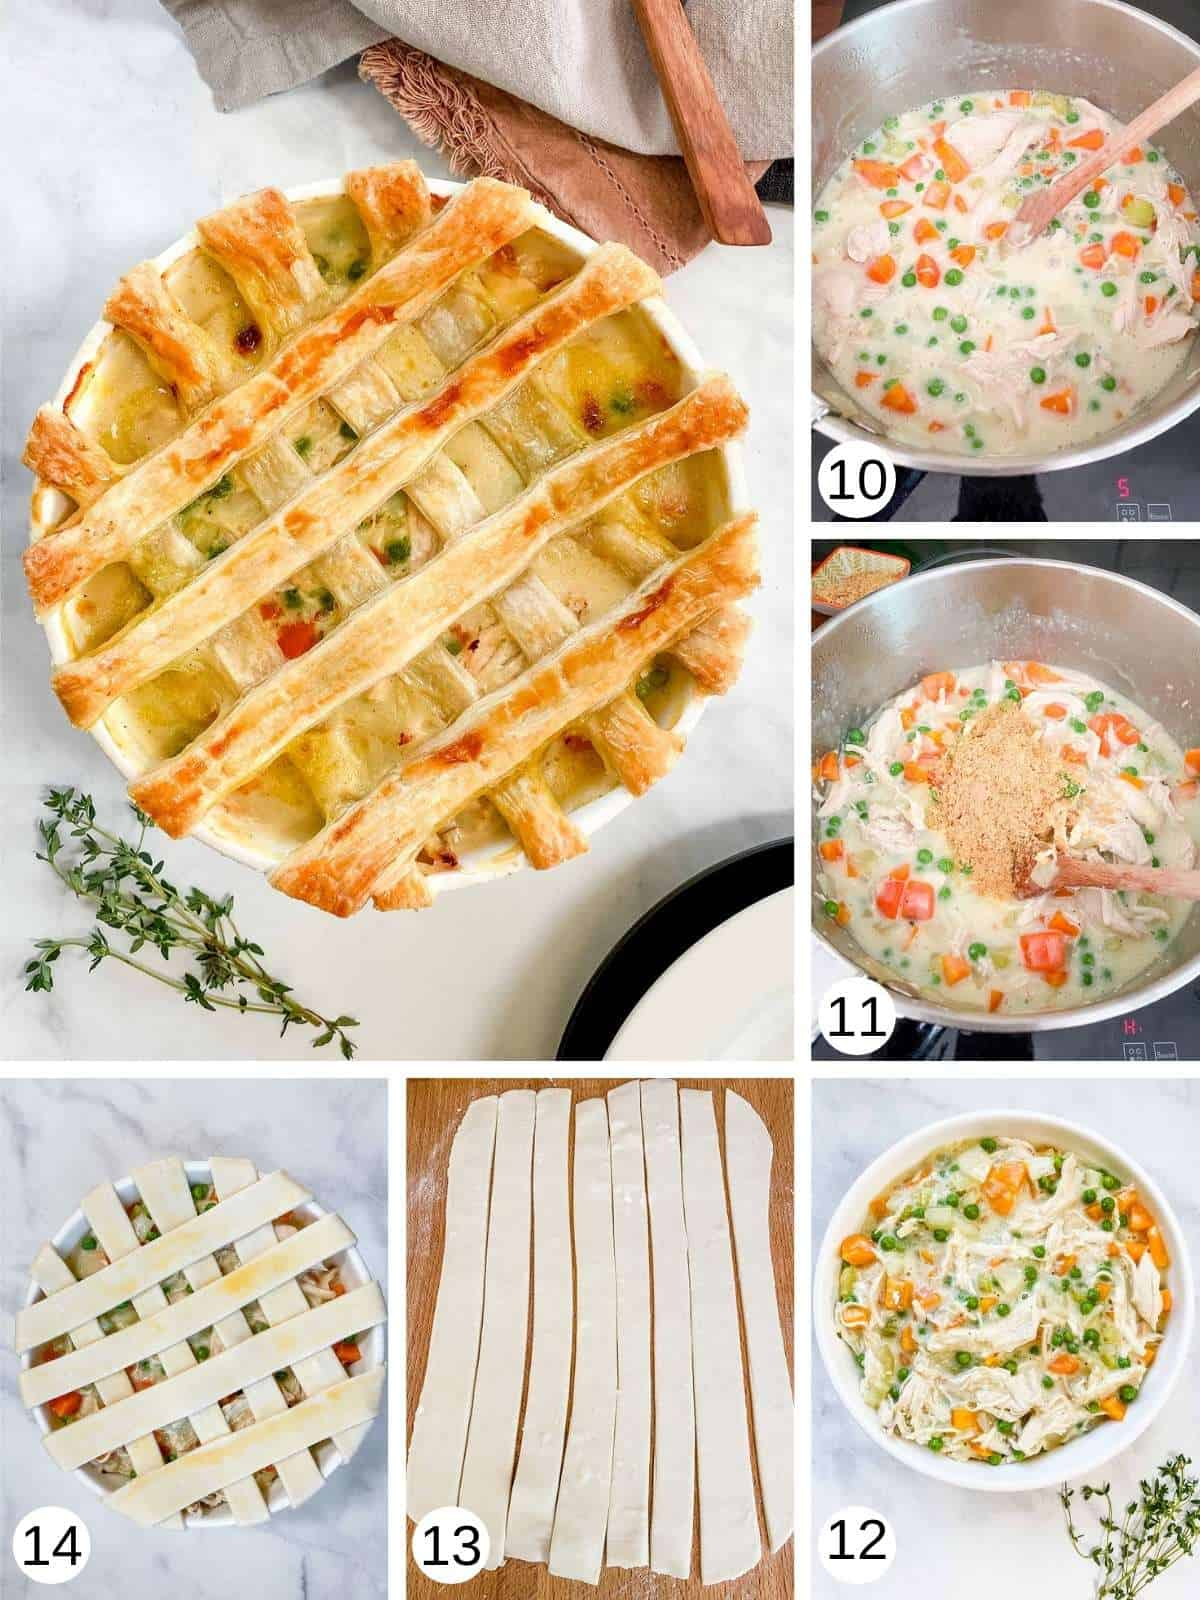 Collage of photos showing the making of a latticed chicken pot pie.